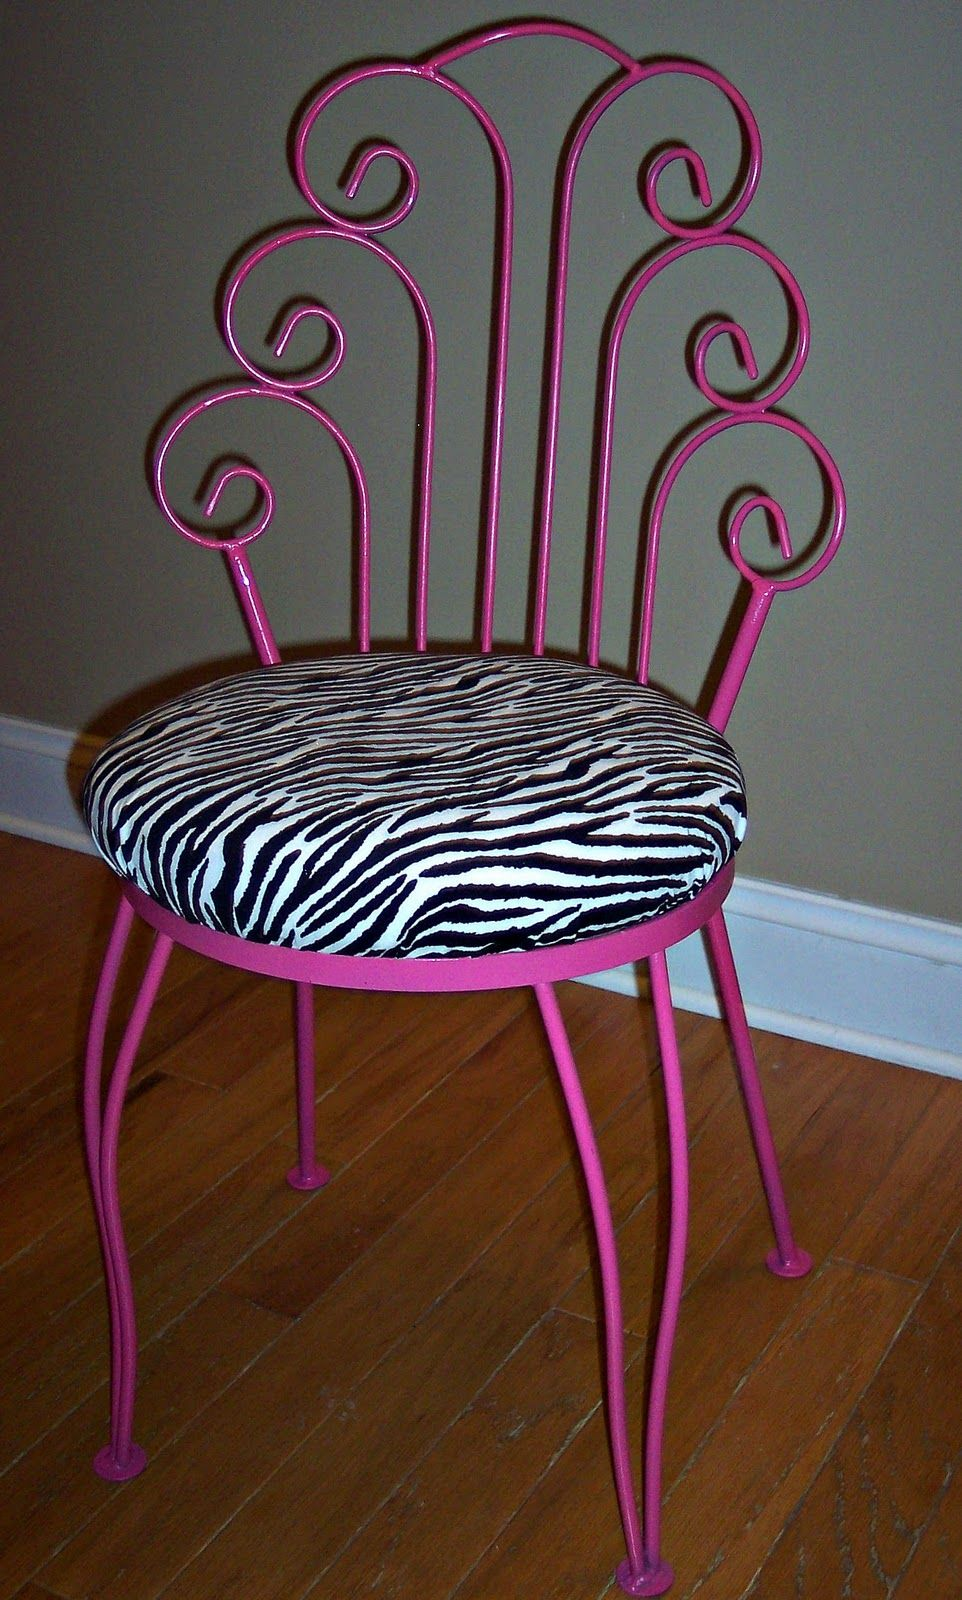 Hot Pink Desk Chair Uniquely Chic A Little And Zebra Print